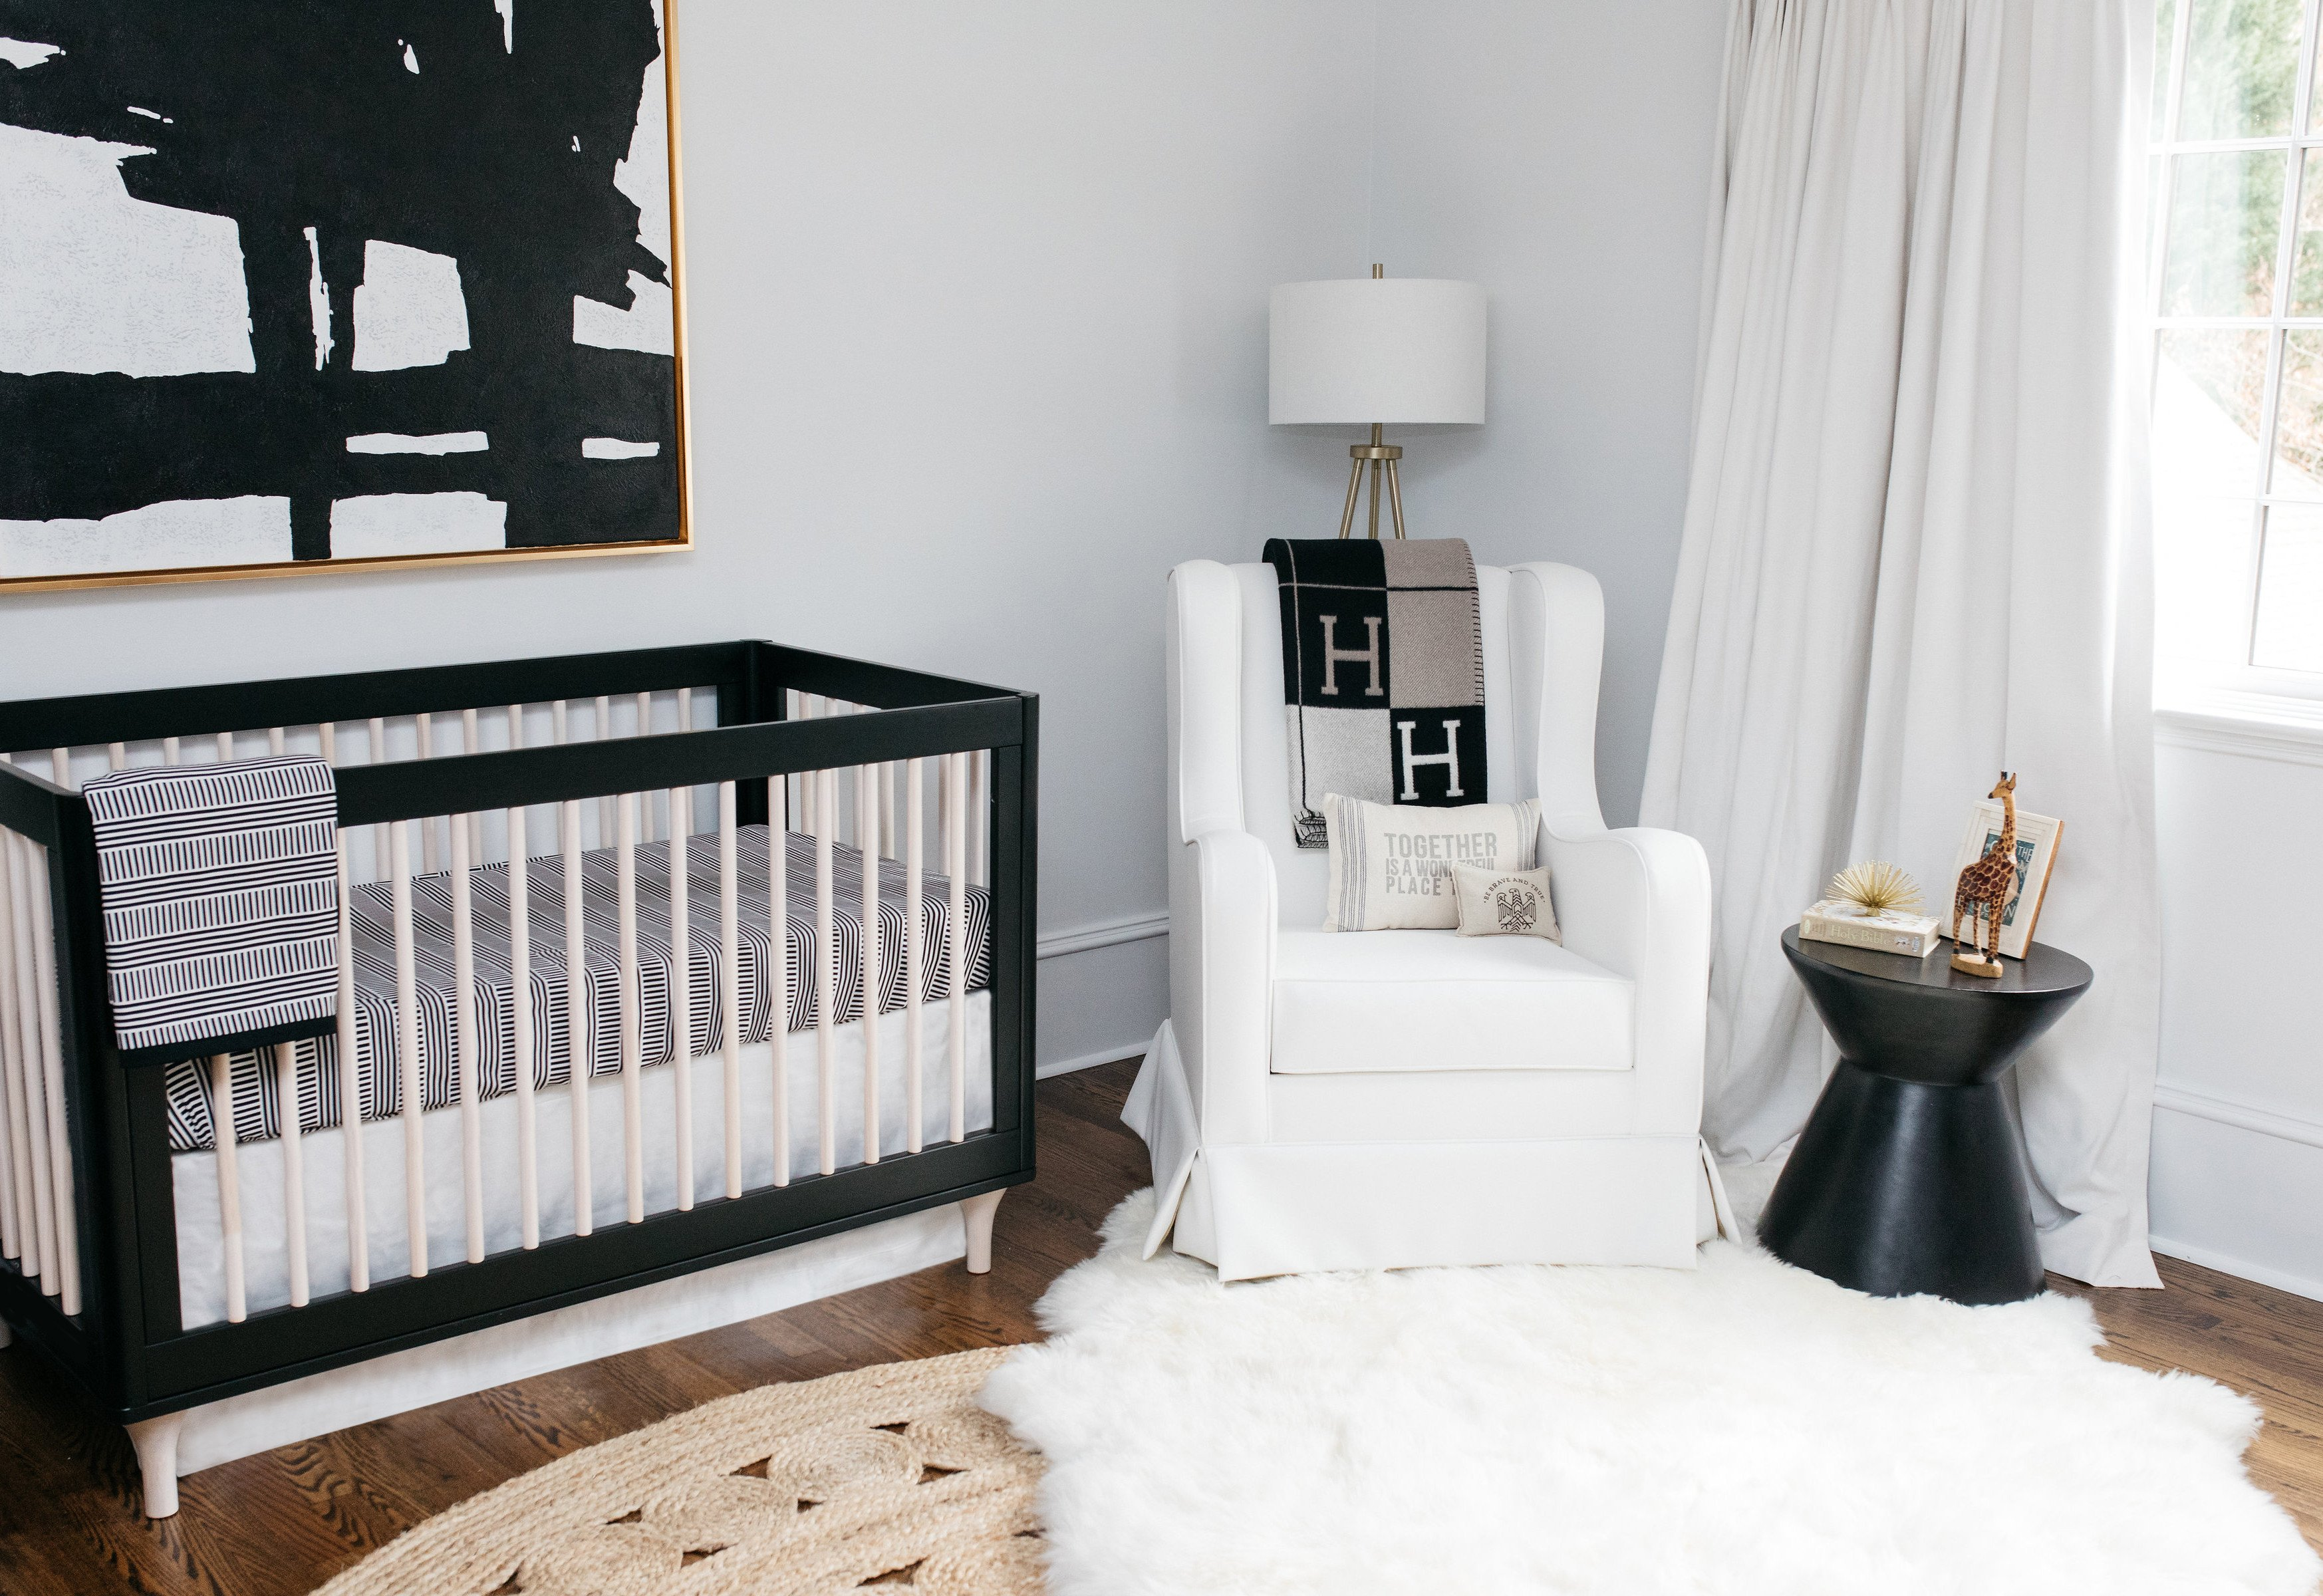 Black and White Nursery Decor Unique Celebrity Design Reveal Emily Maynard S Nursery Project Nursery